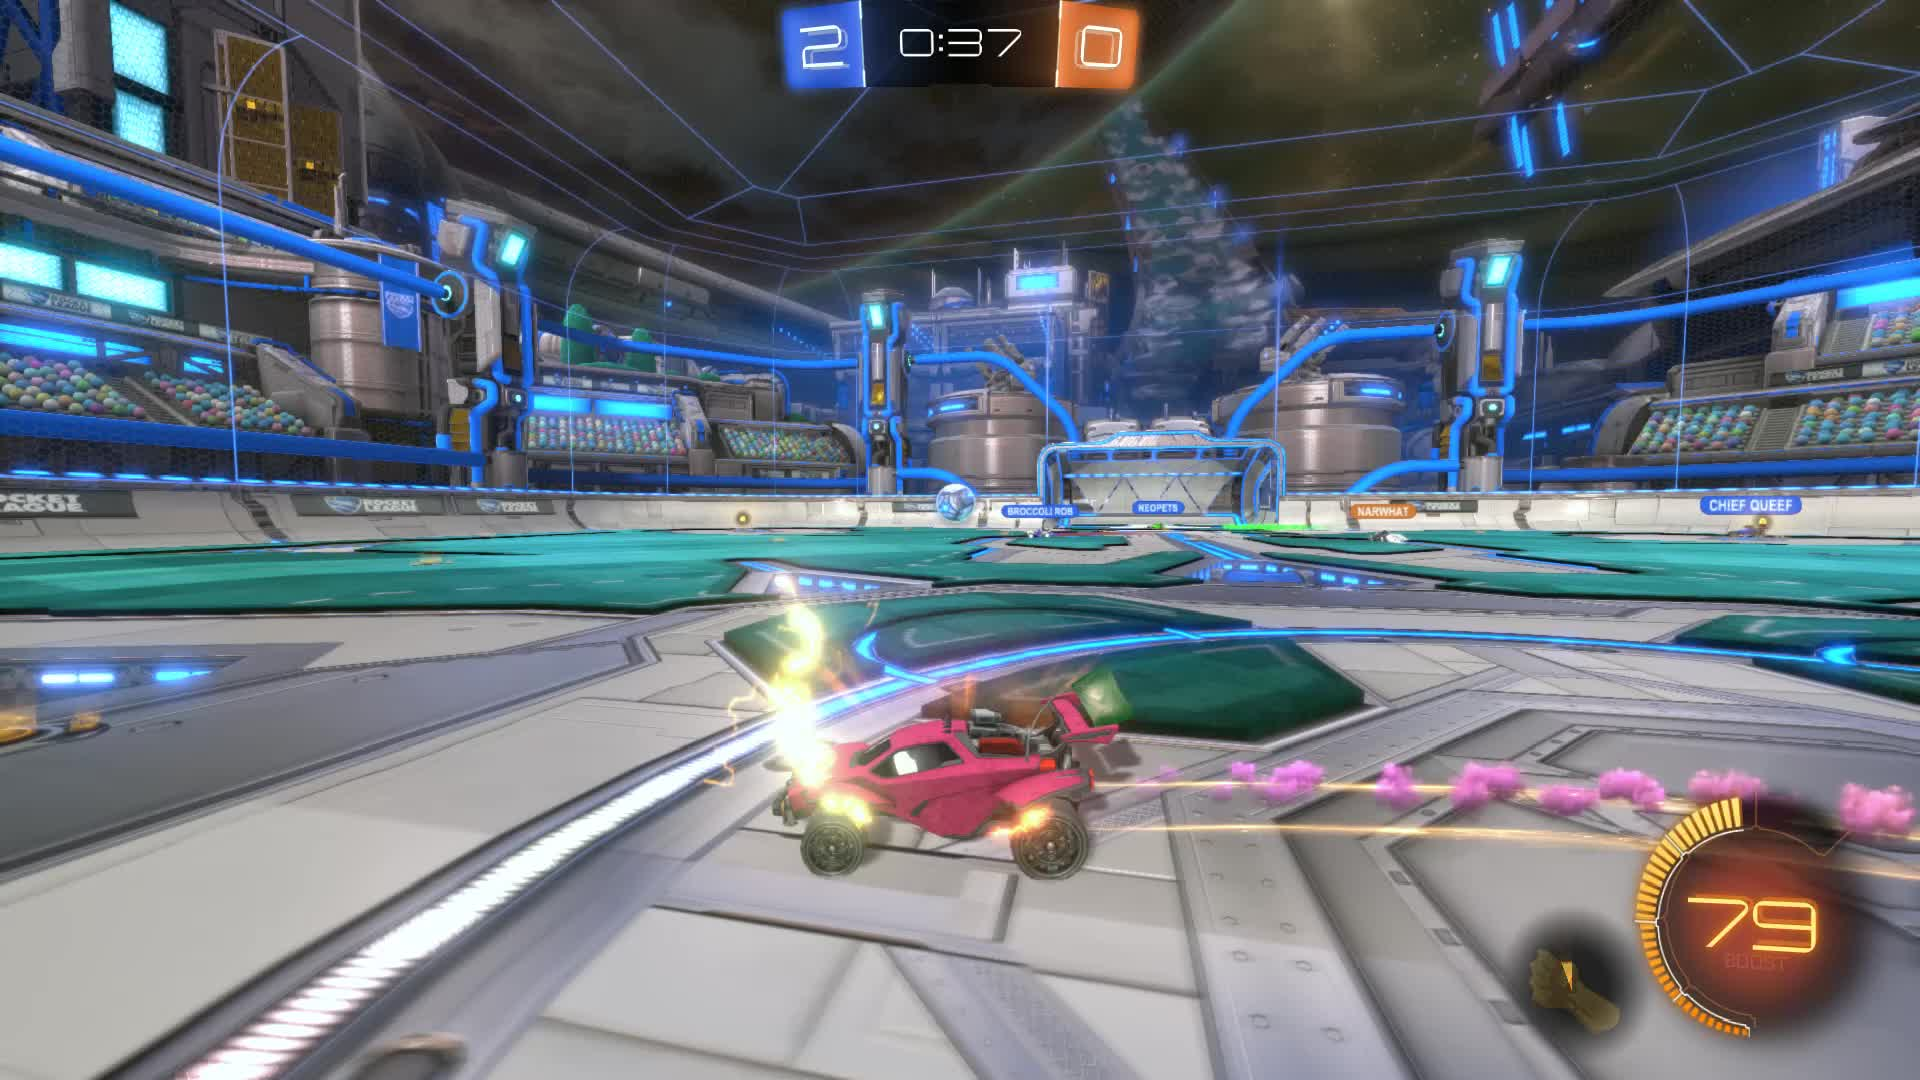 Gif Your Game, GifYourGame, Goal, Rocket League, RocketLeague, xoT, When you suck but it's rumble GIFs